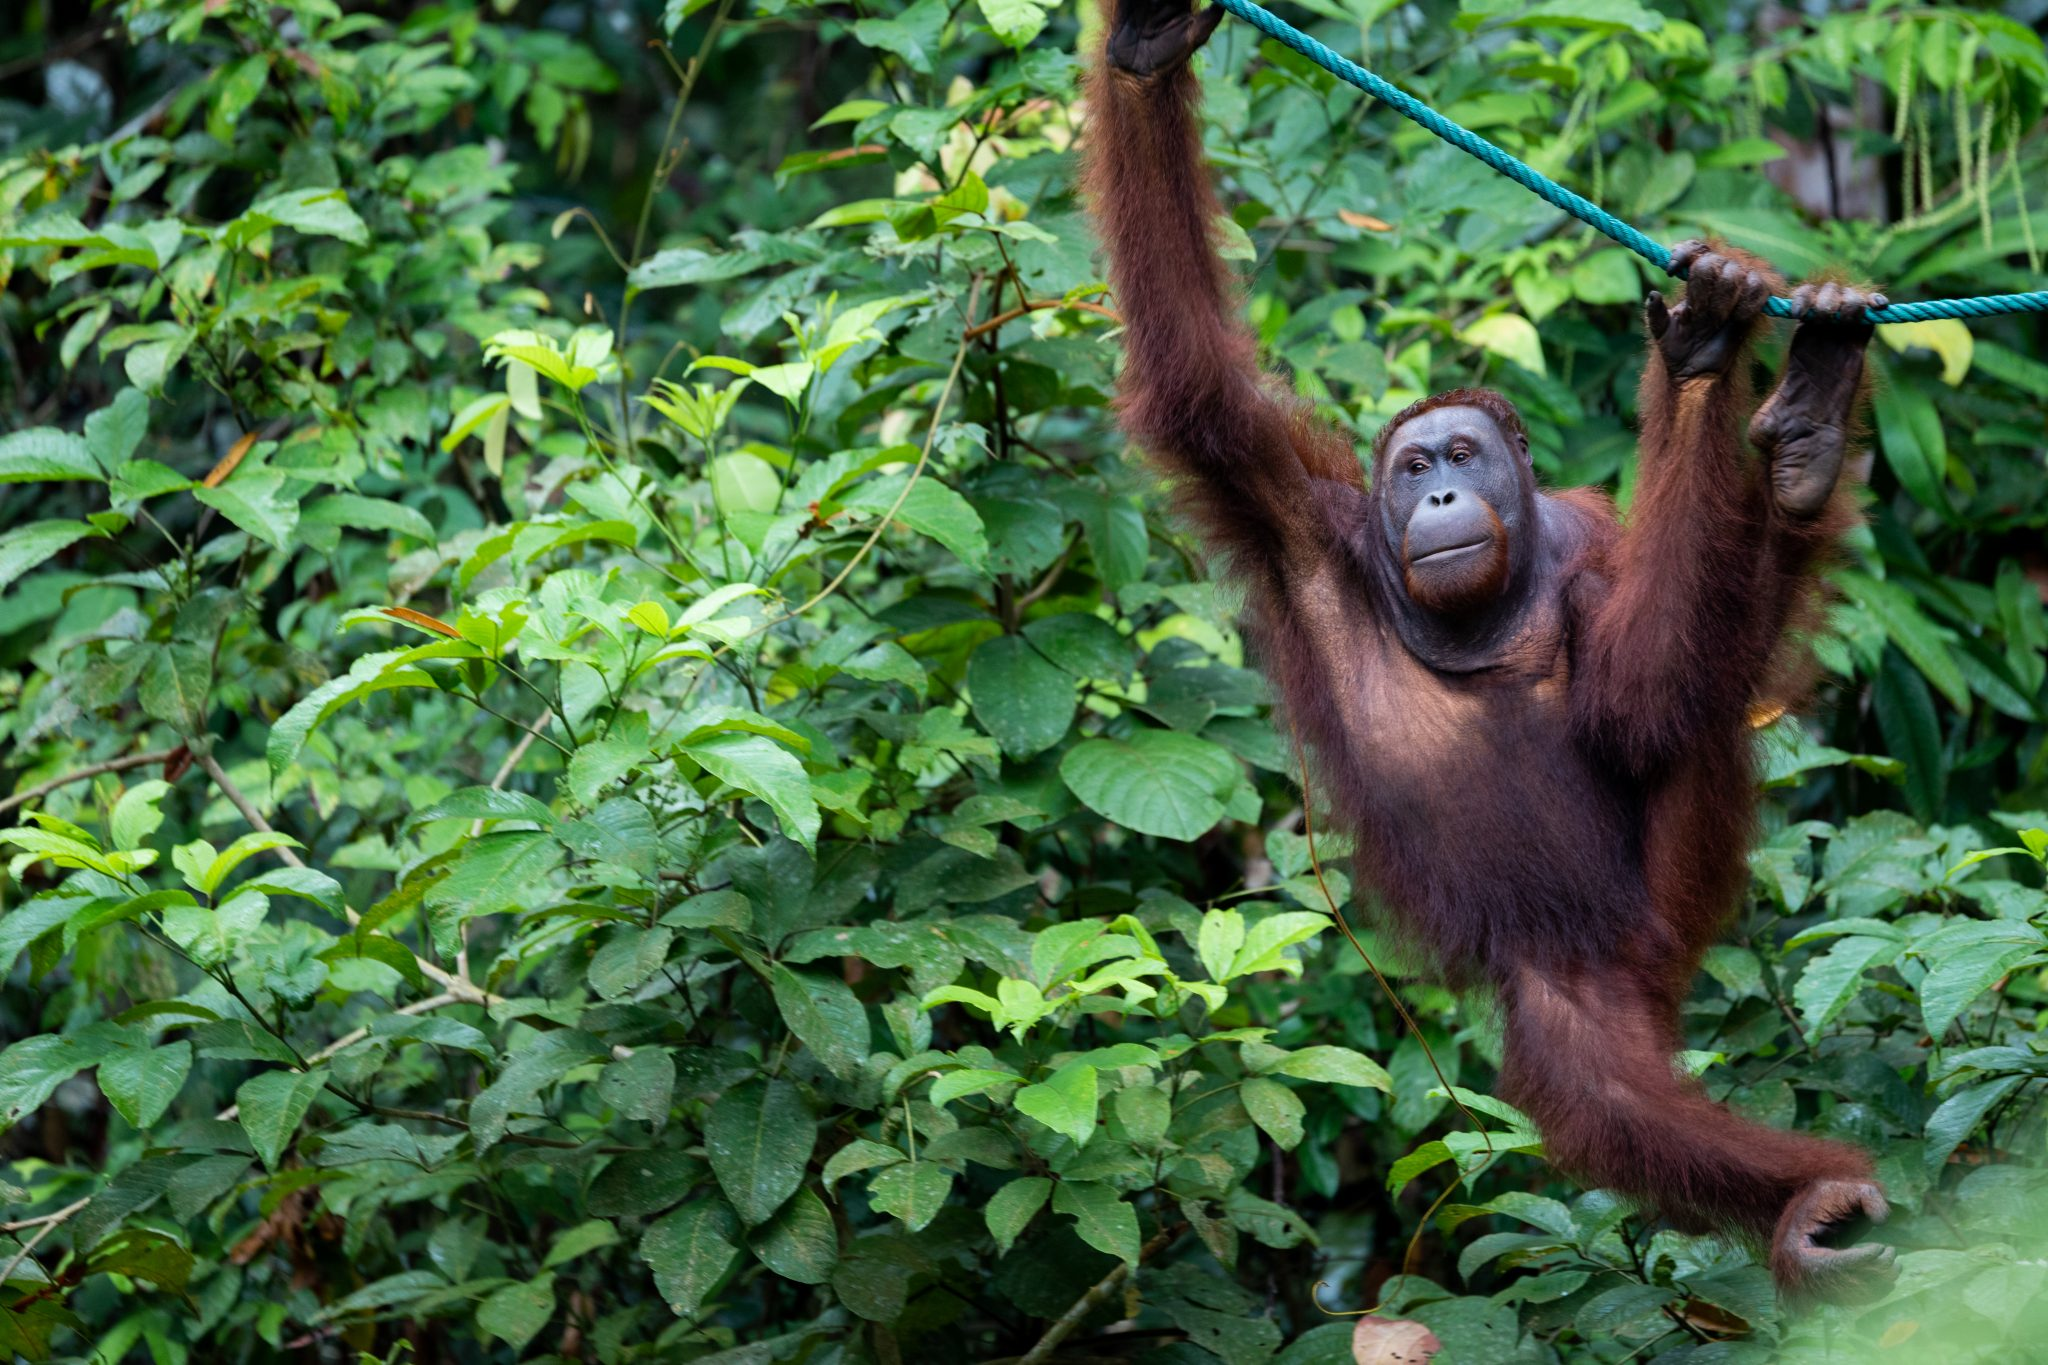 Increased Poaching of Critically Endangered Orangutans During Pandemic